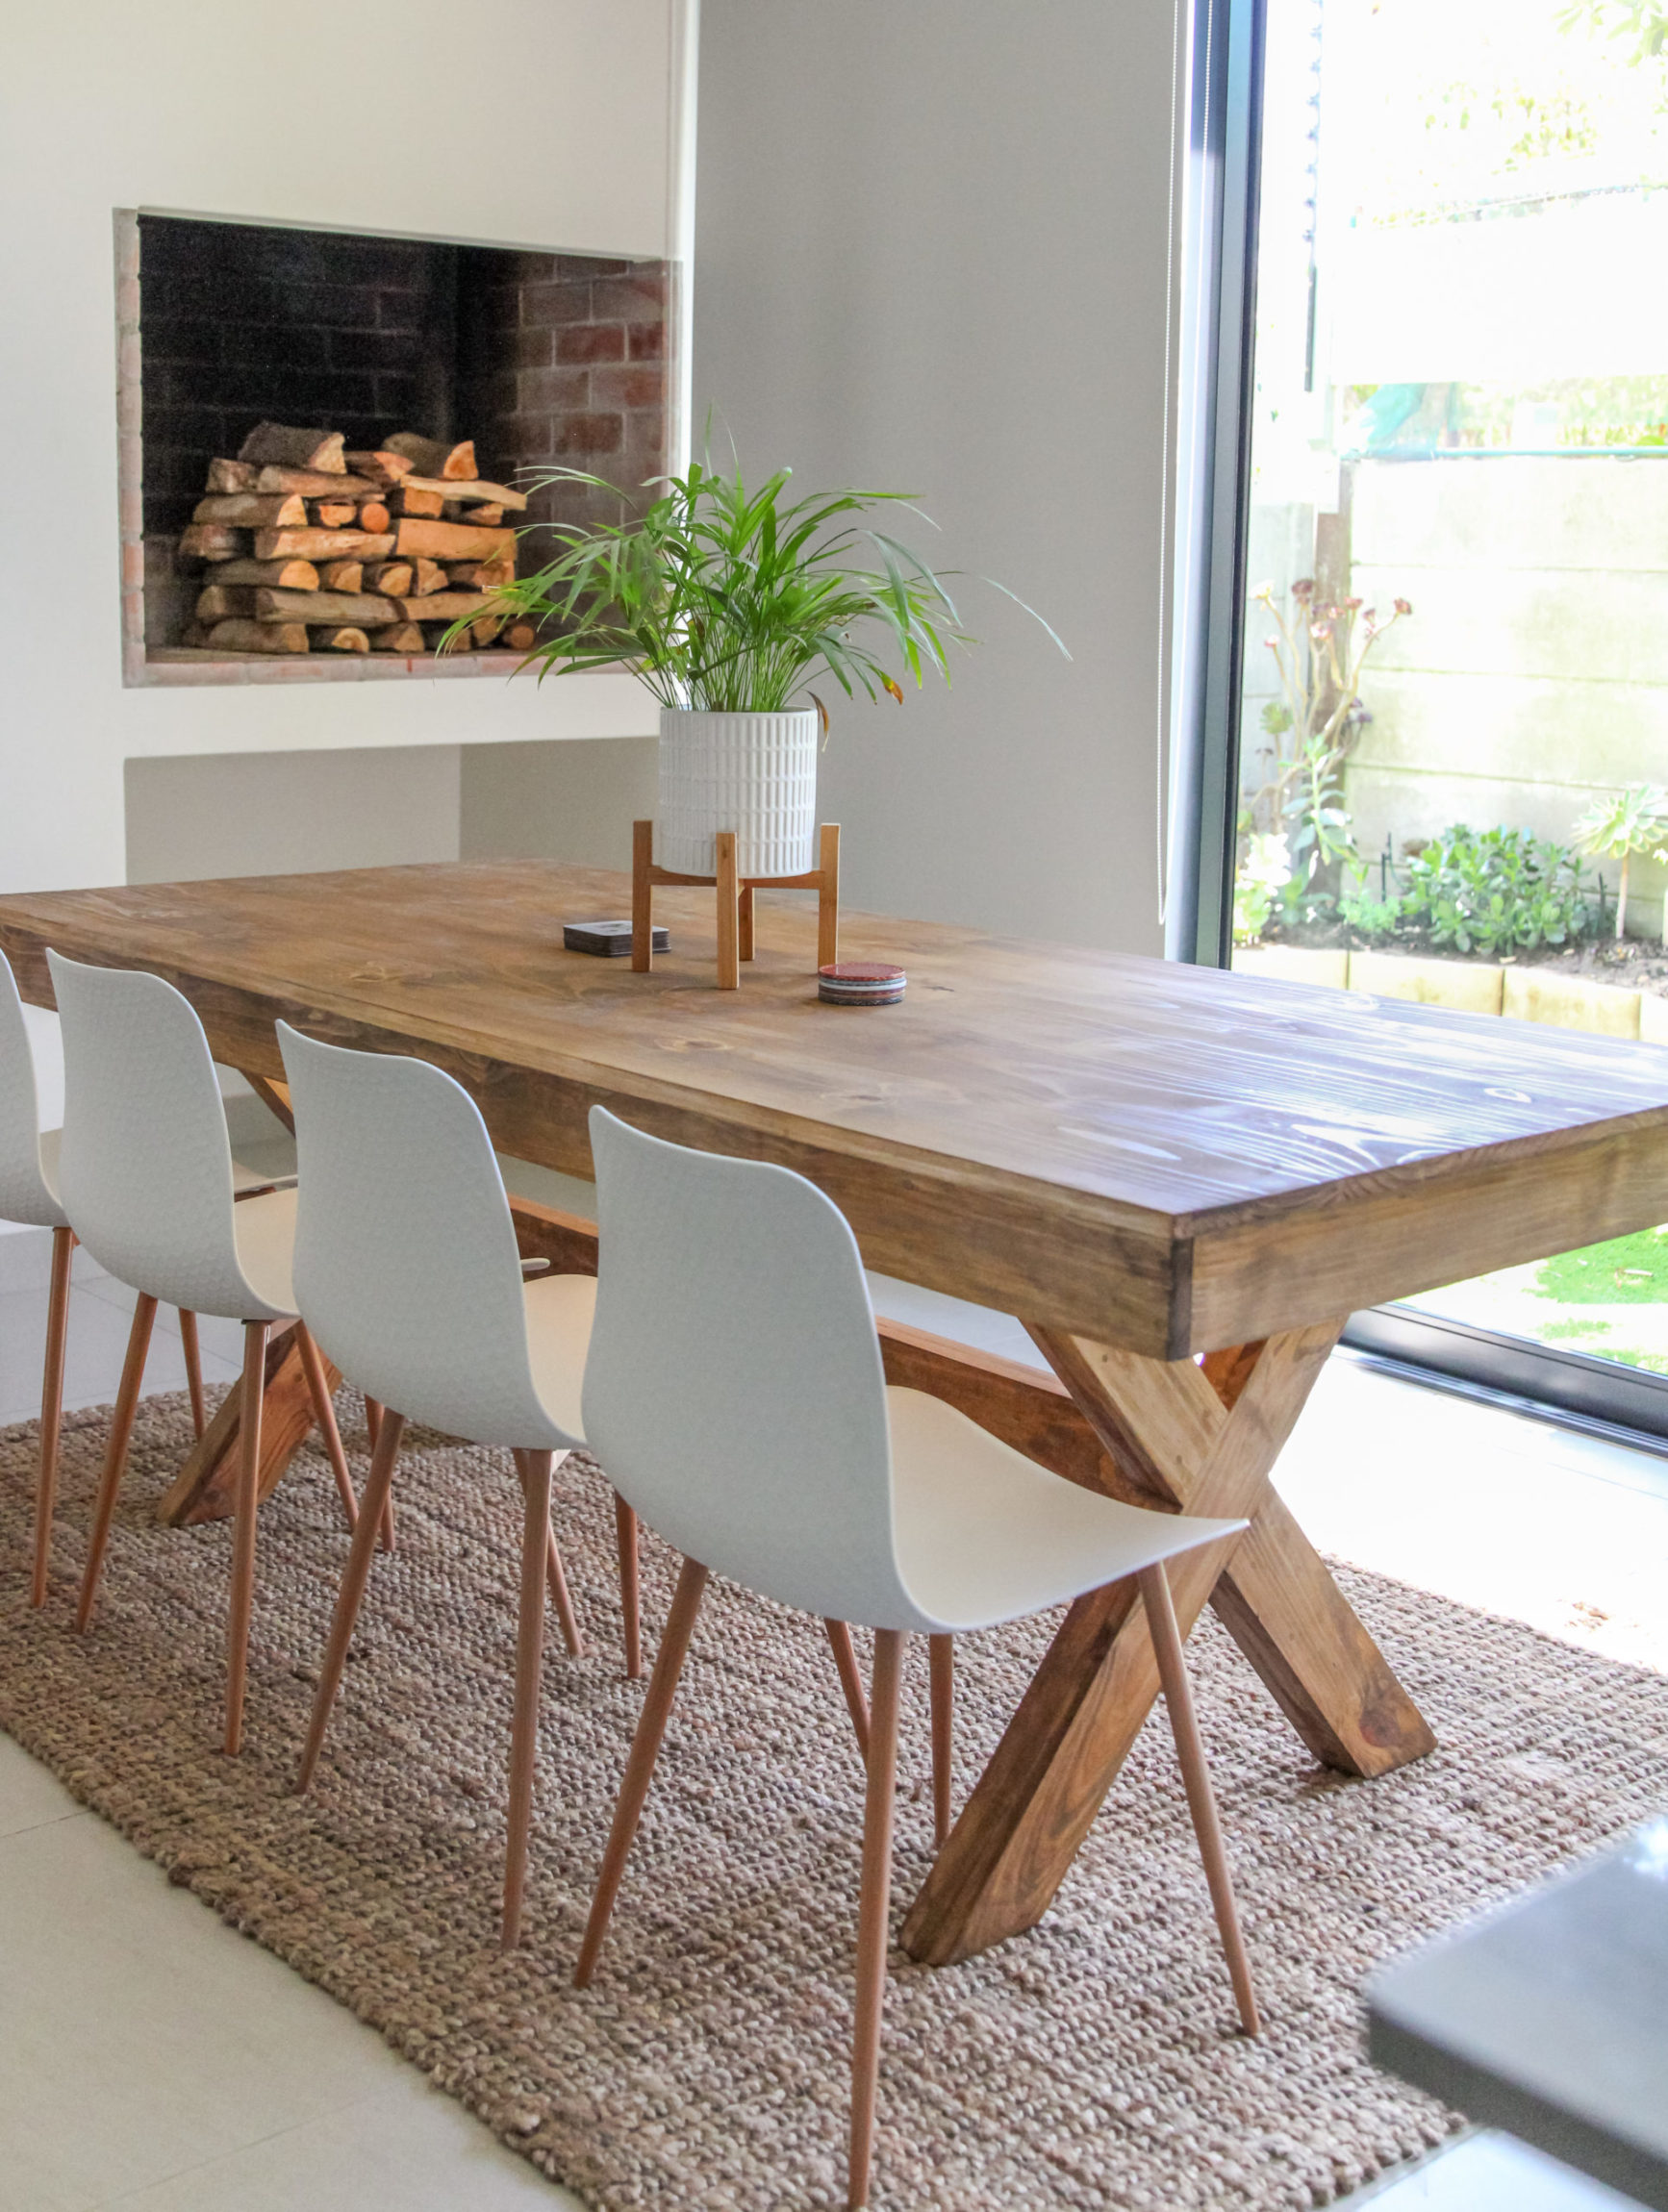 Bespoke Pine Dining Table Hand Made, Pine Dining Room Table And Chairs